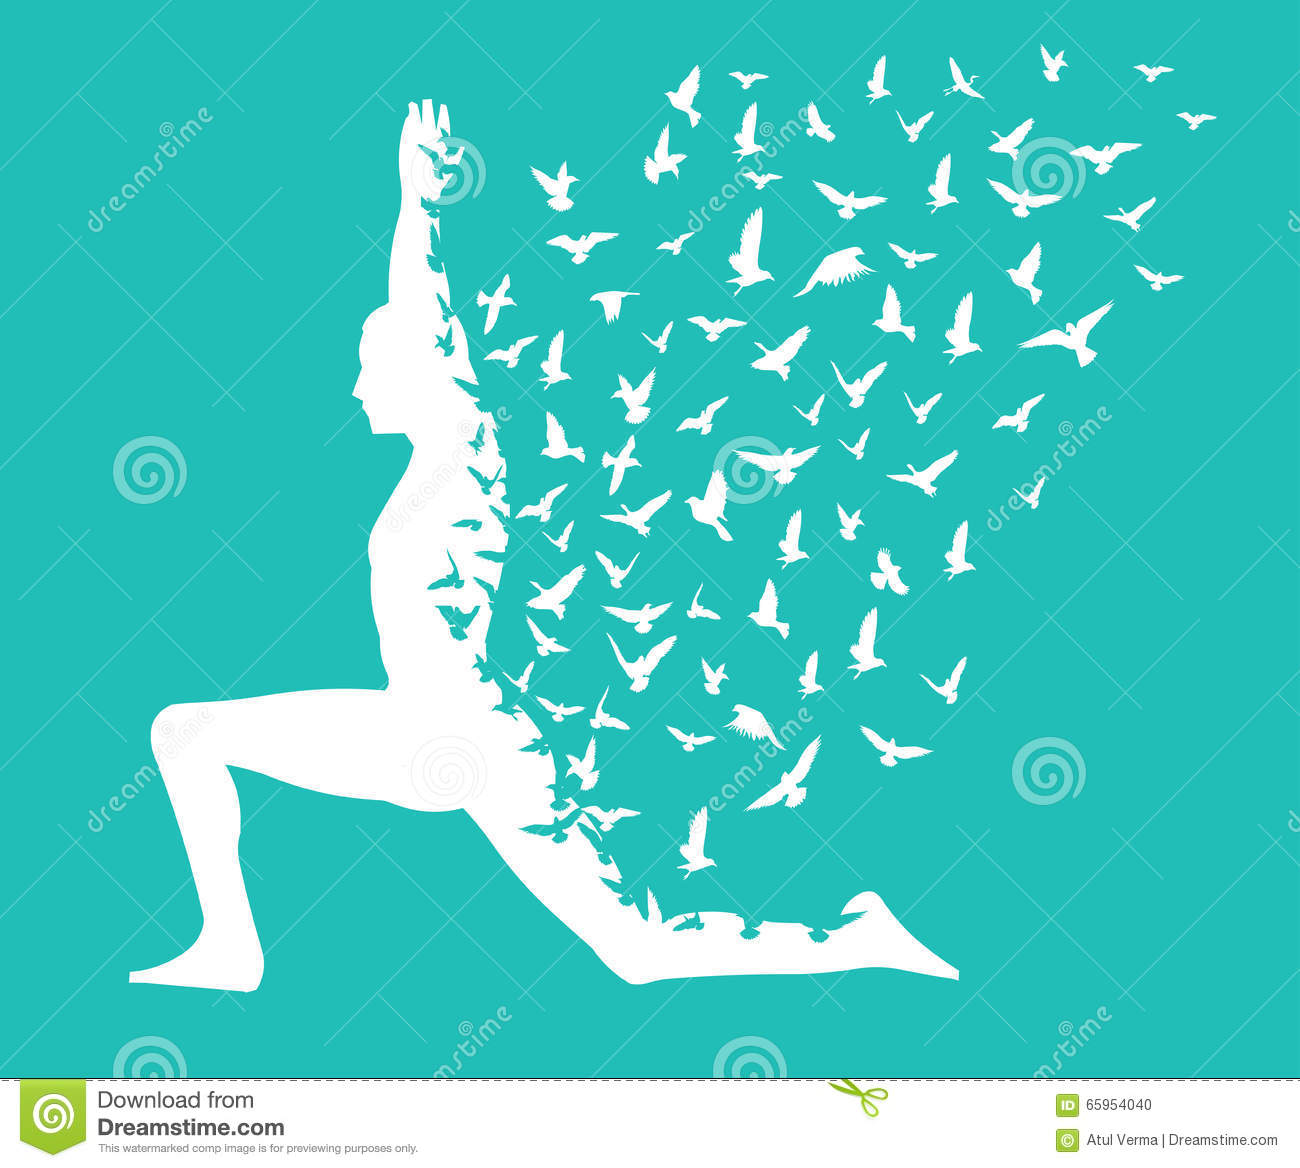 Yoga Day/yoga Infographic With Birds Flying Design, Templates For ...